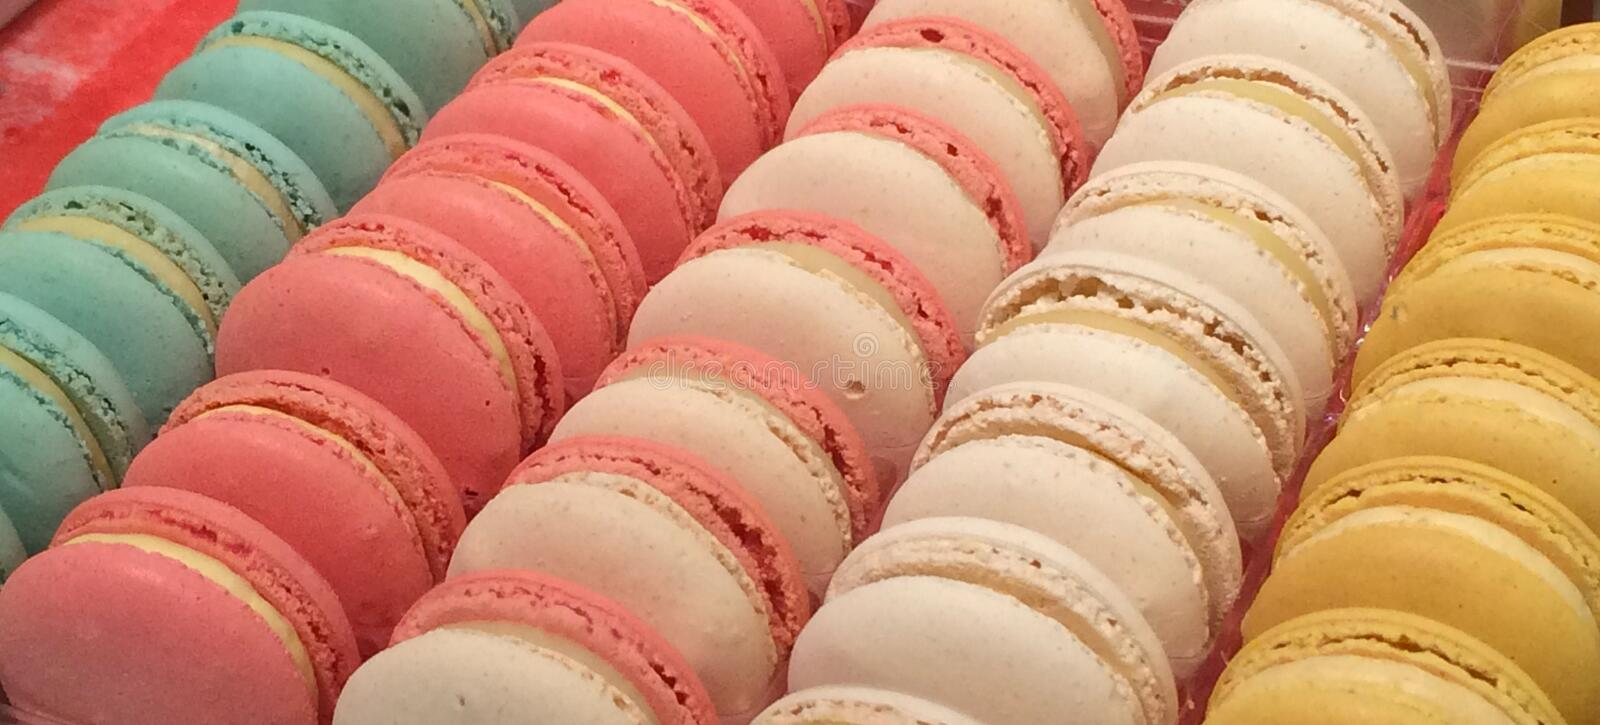 Colorful rows of Macaroons or Macarons as this delicious pastry is called in France. Macaroons are conquering the world as more and more people get addicted to stock photos